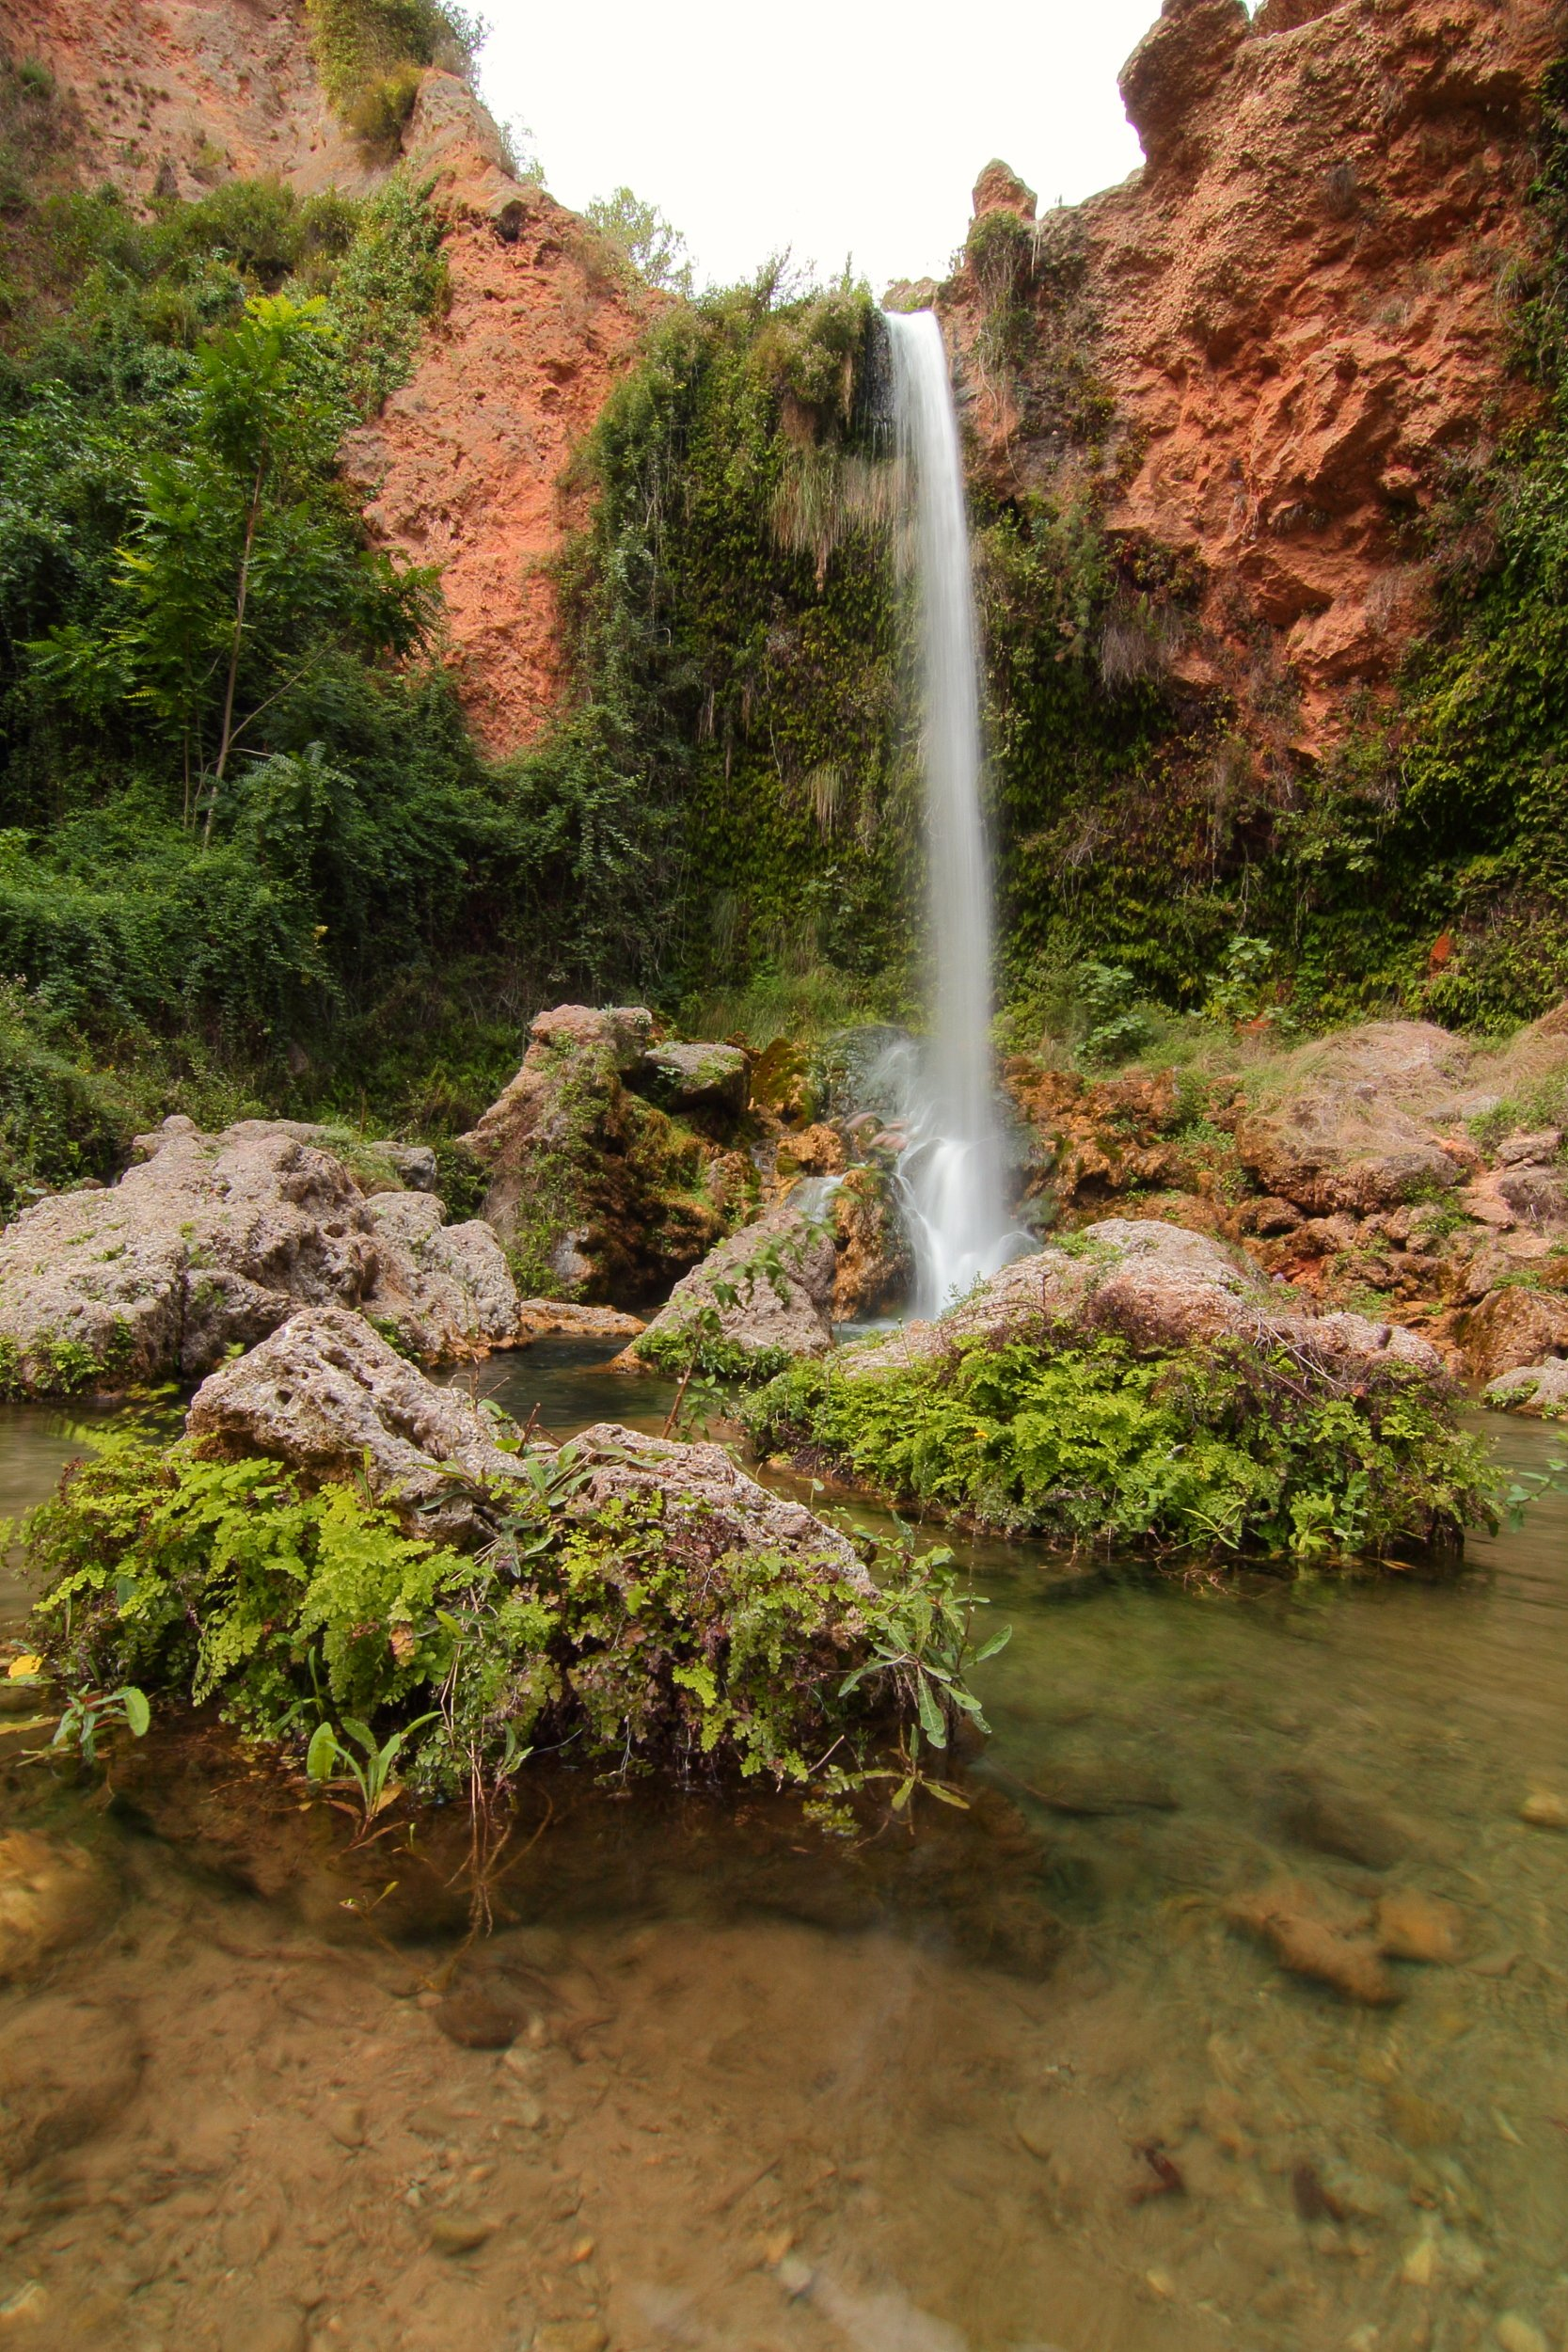 Free download high resolution image - free image free photo free stock image public domain picture -waterfall in Anna, Valencia, Spain